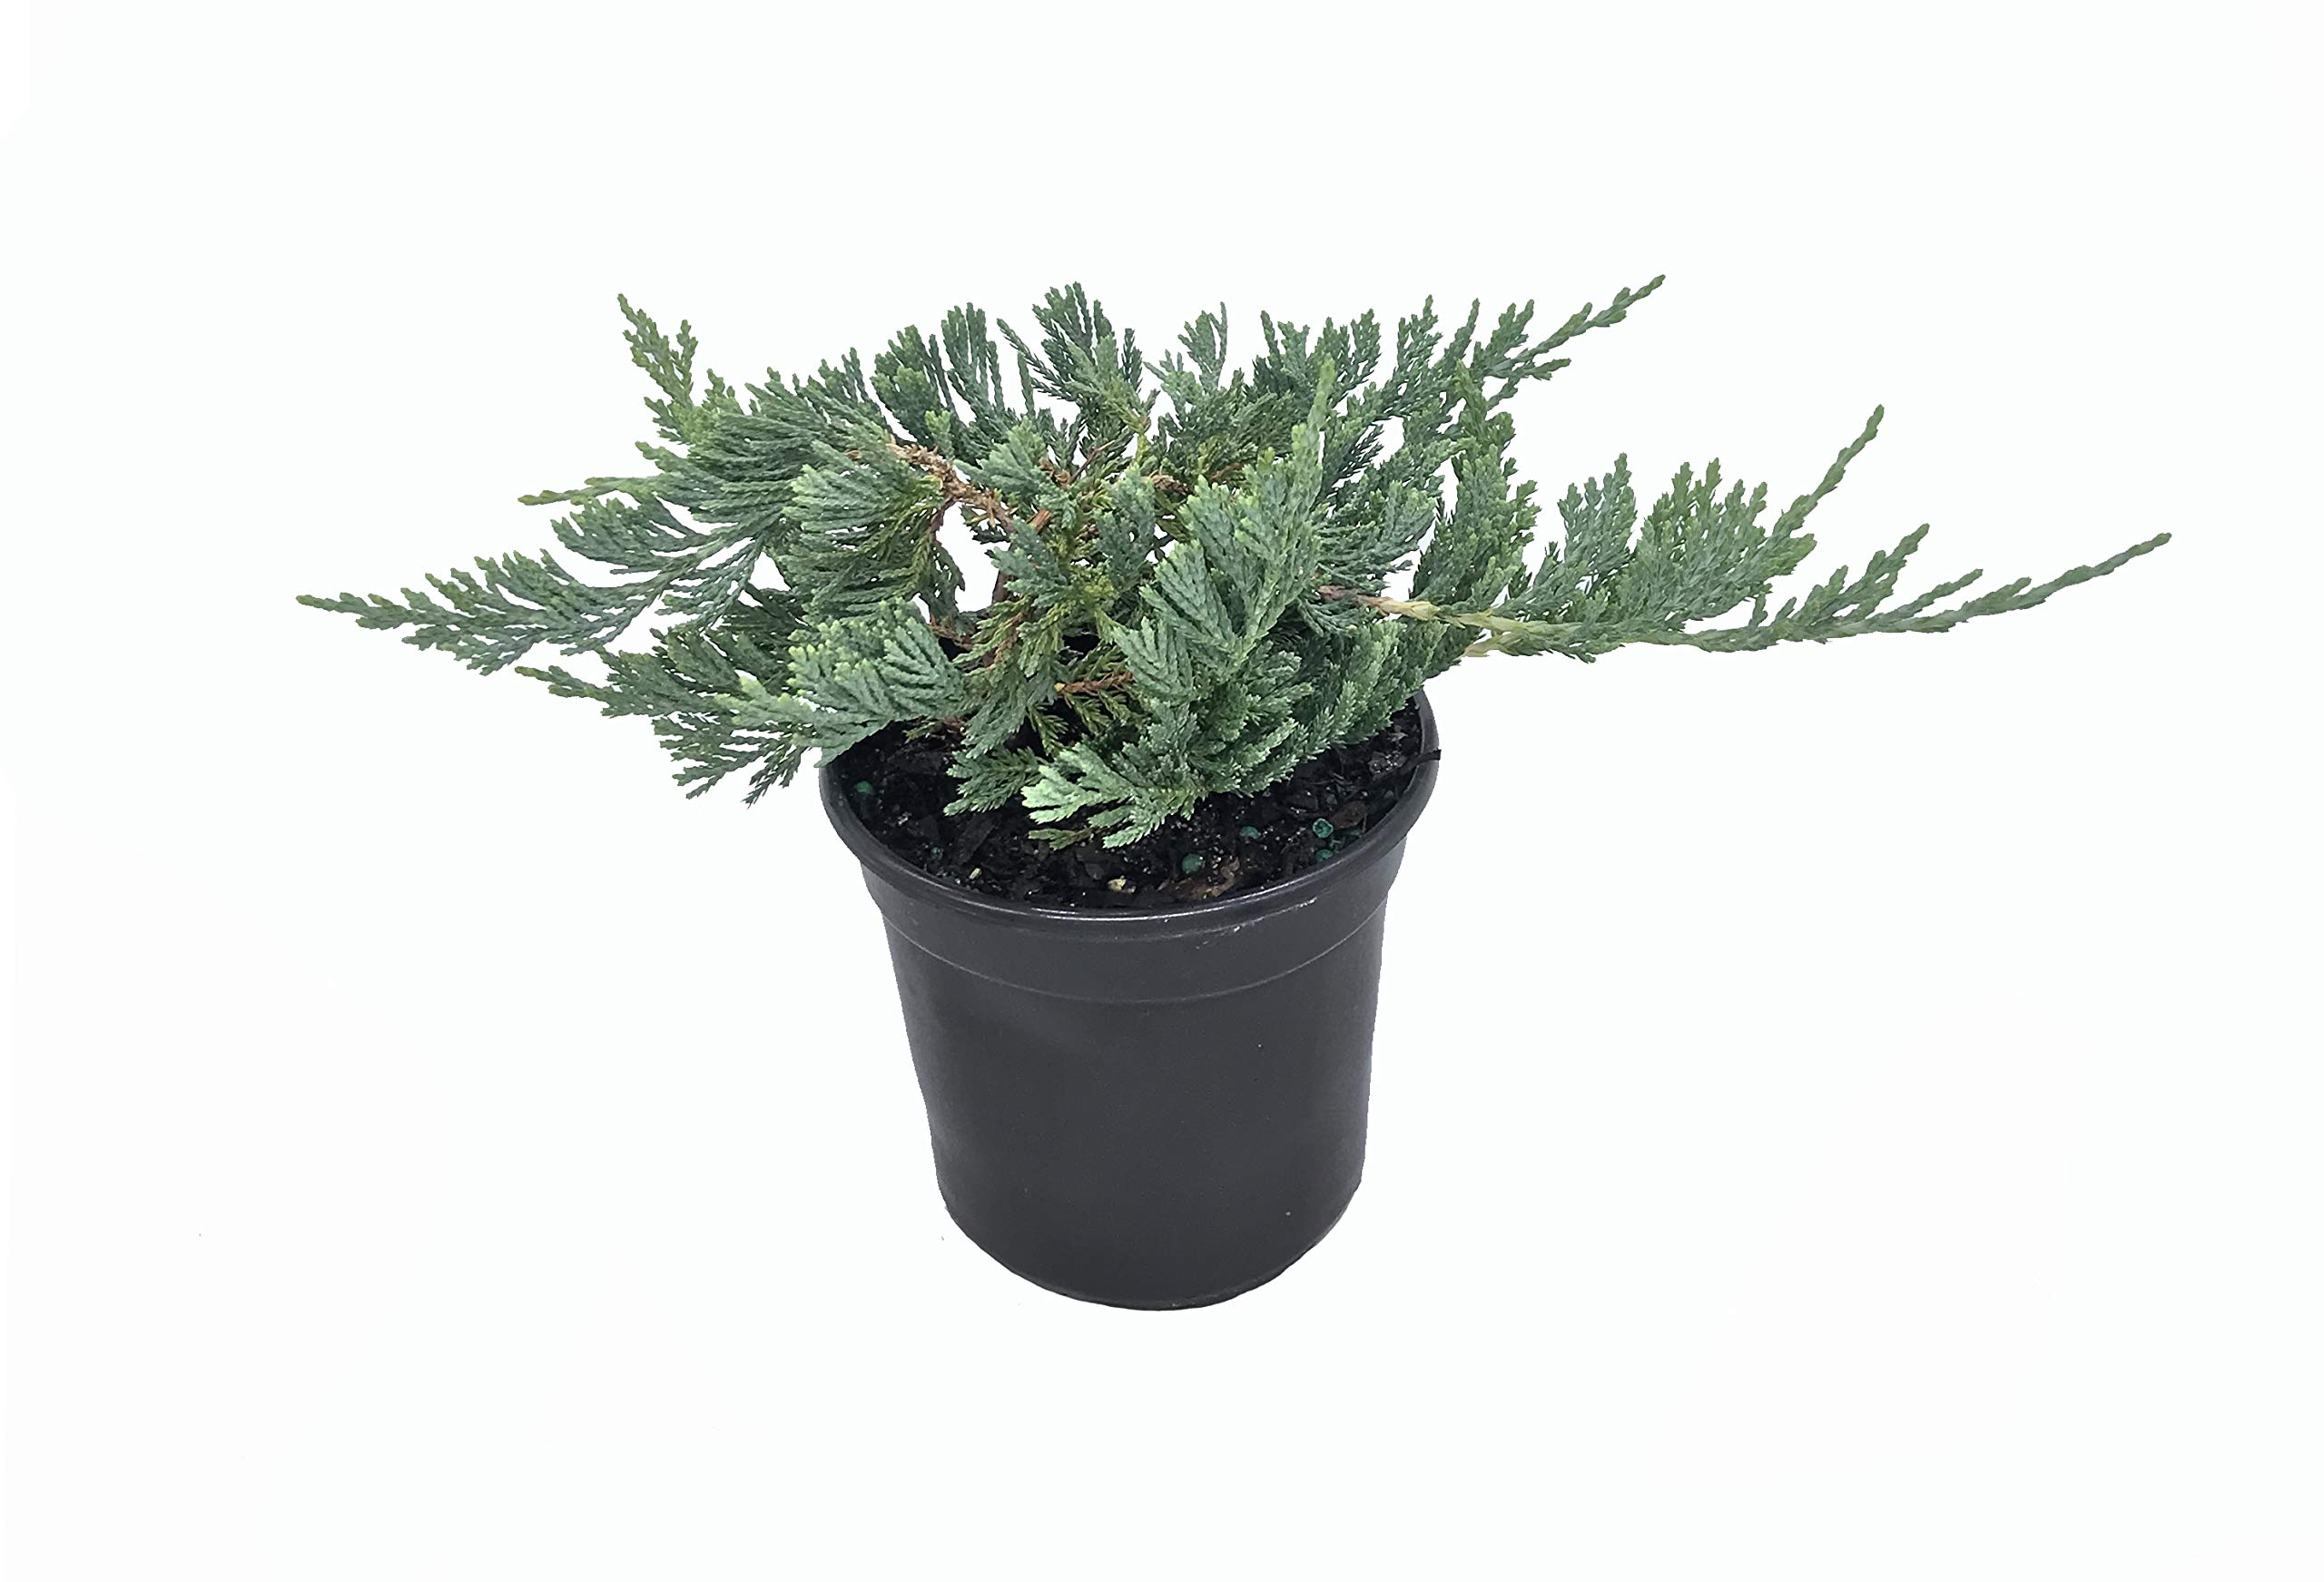 Blue Rug Juniper - 3 Fully Rooted 4'' Plants - Low Maintenance Evergreen Ground Cover - Wiltonii